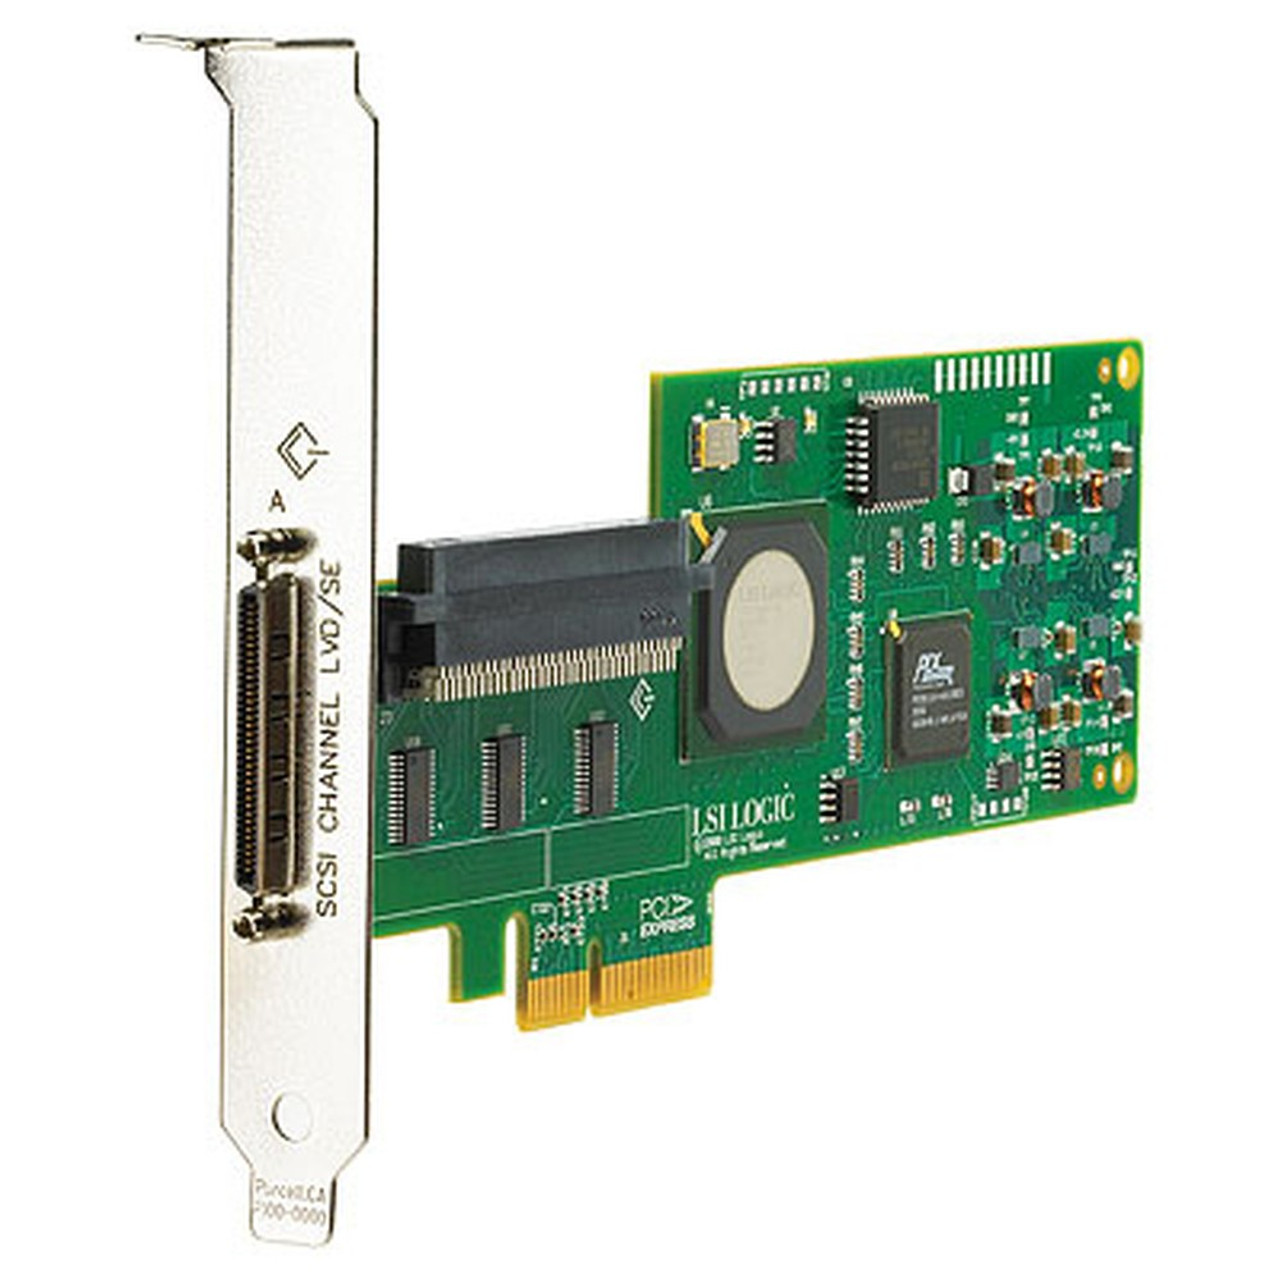 DELL PRECISION 650 LSI ULTRA 320 SCSI NON-RAID ADAPTER DRIVERS FOR WINDOWS 8